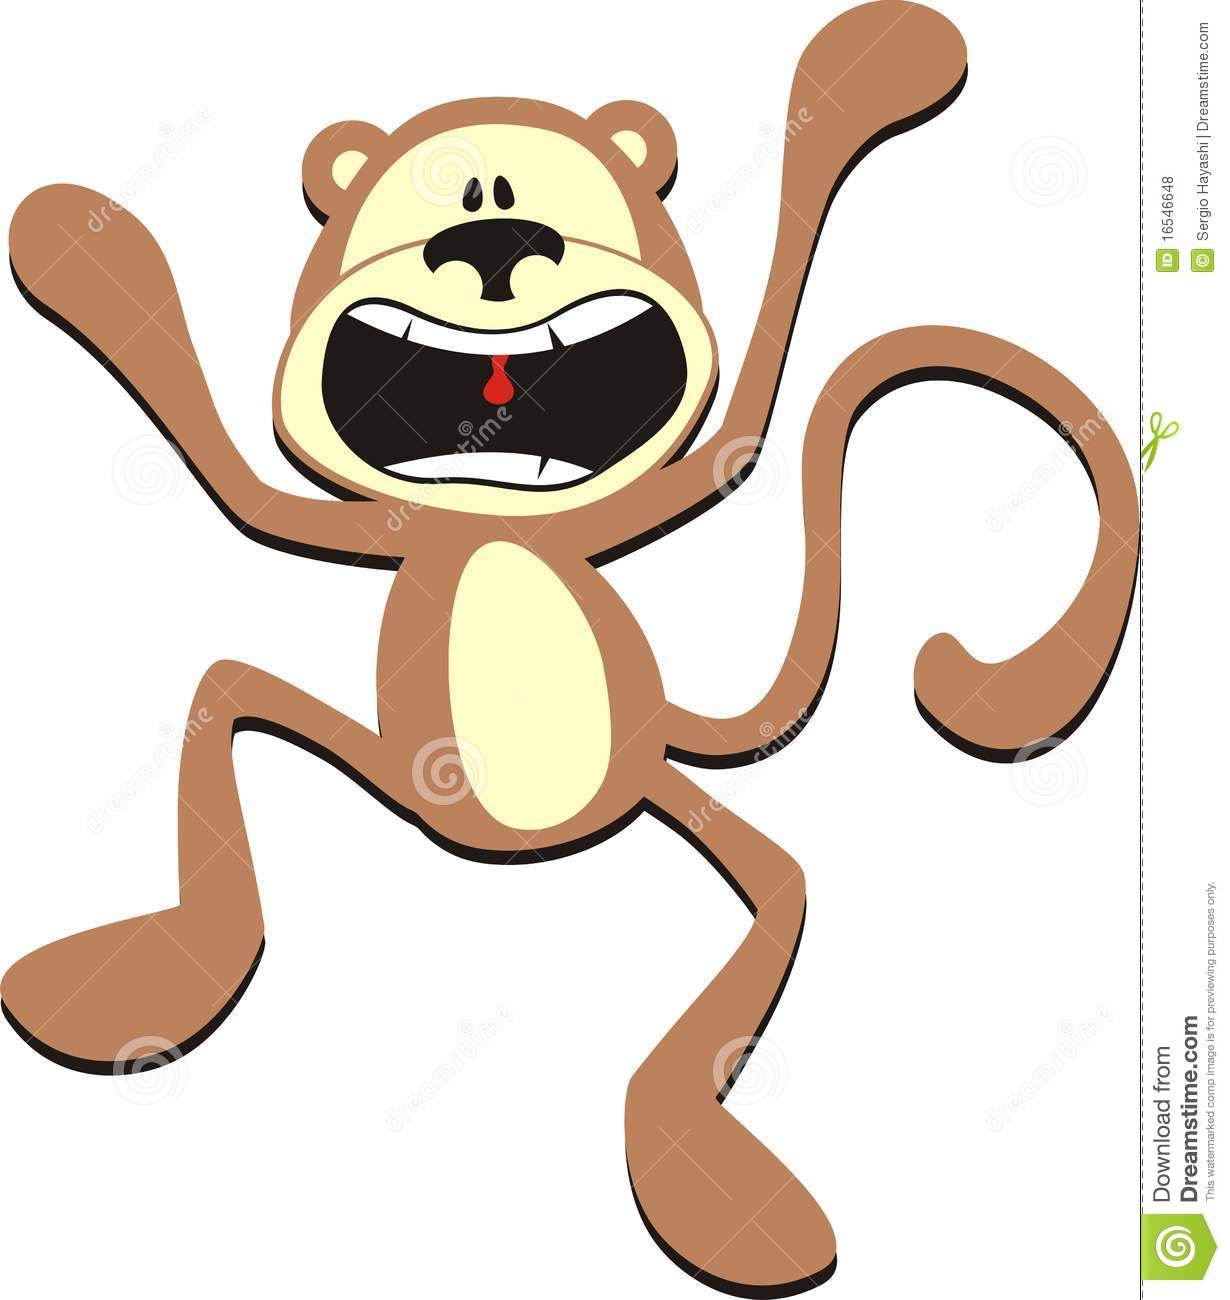 stress monkey royalty free stock photos image 16546648